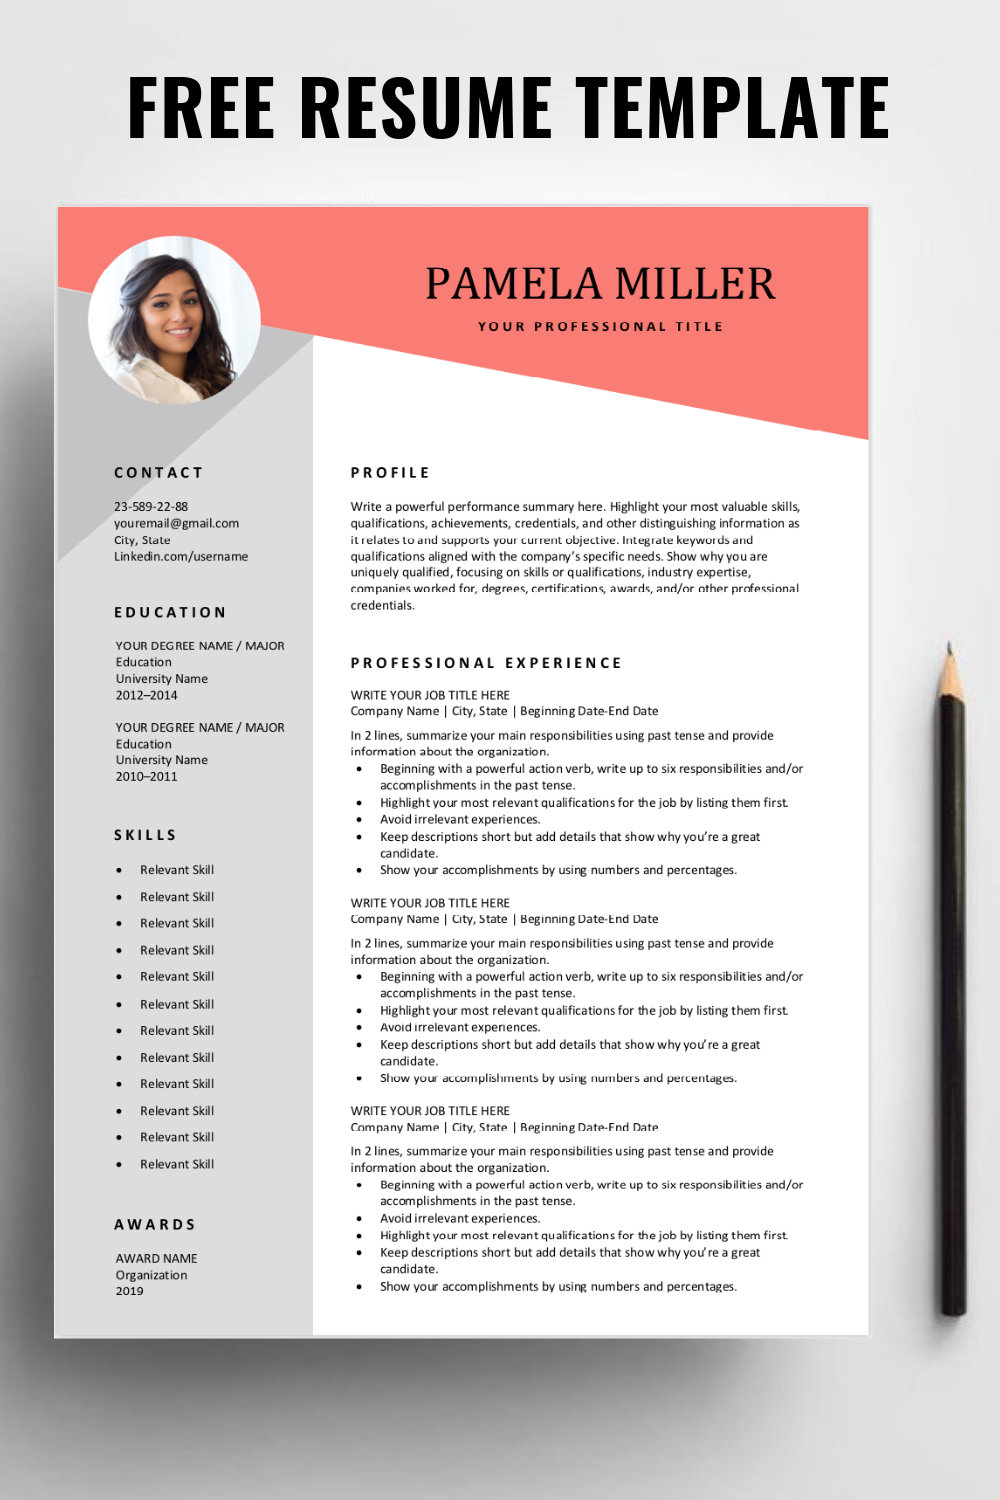 Free Resume Template Downloadable resume template